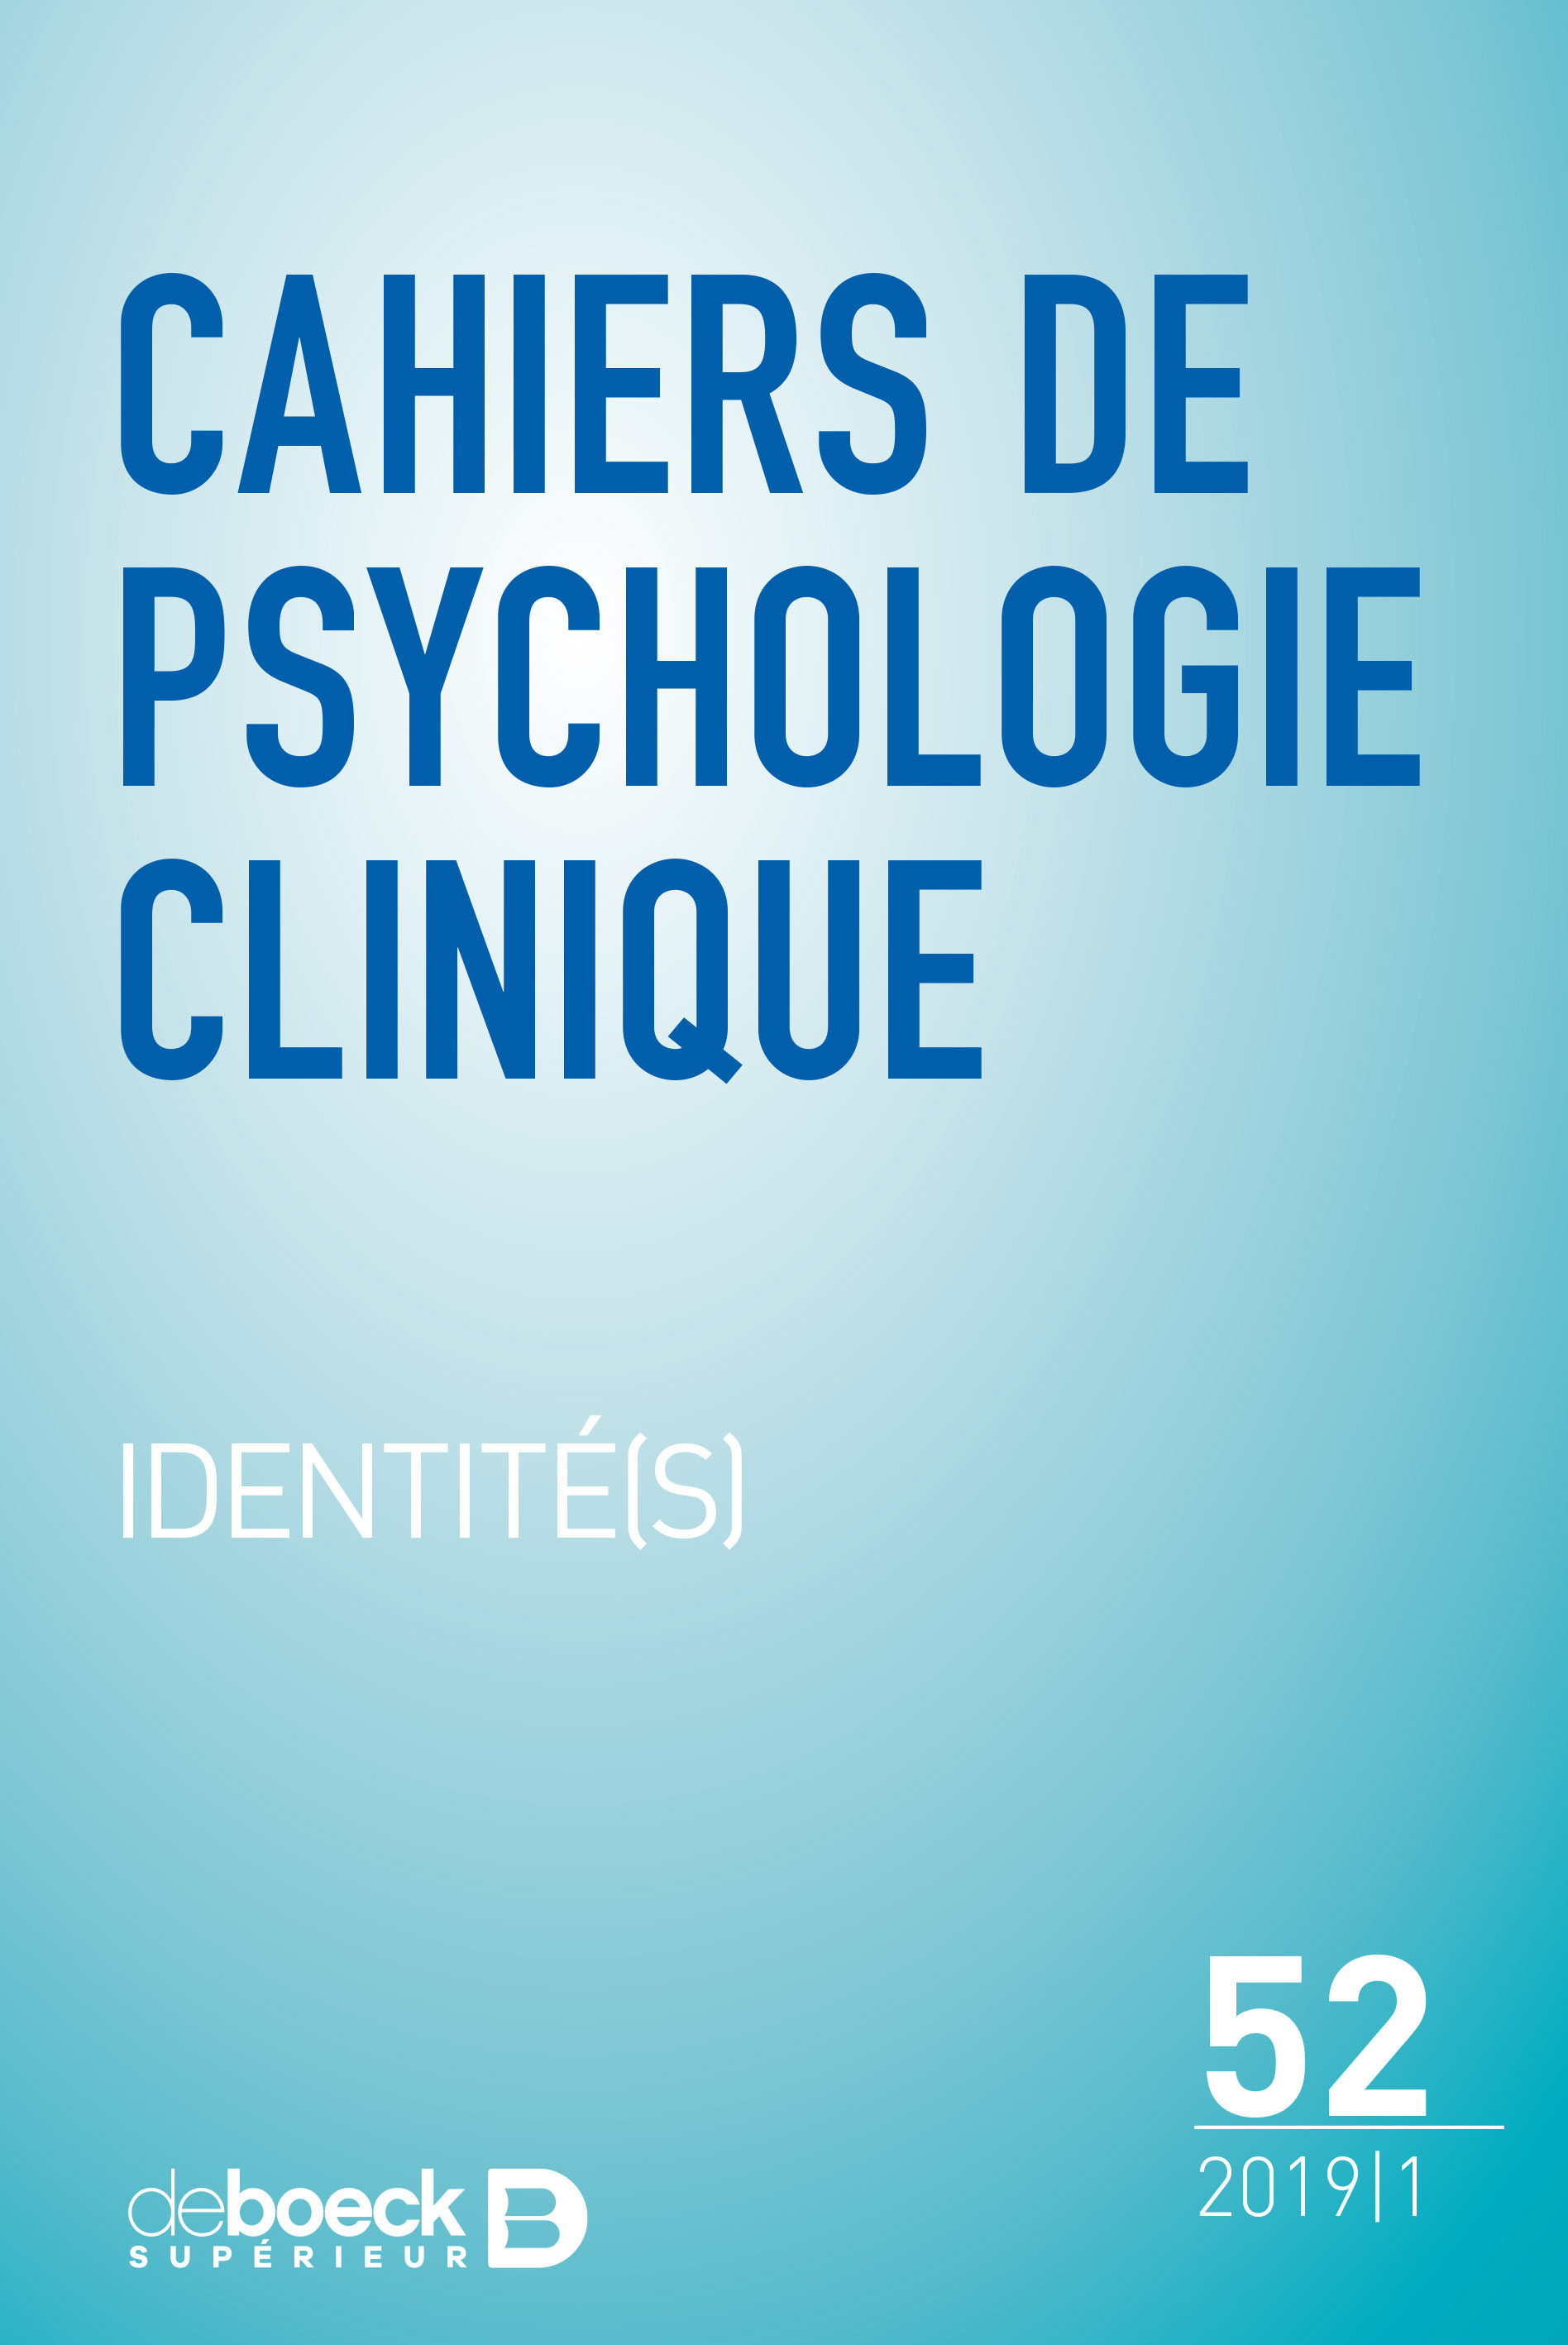 CAHIERS DE PSYCHOLOGIE CLINIQUE 2019/1 - 52 - IDENTITE(S)